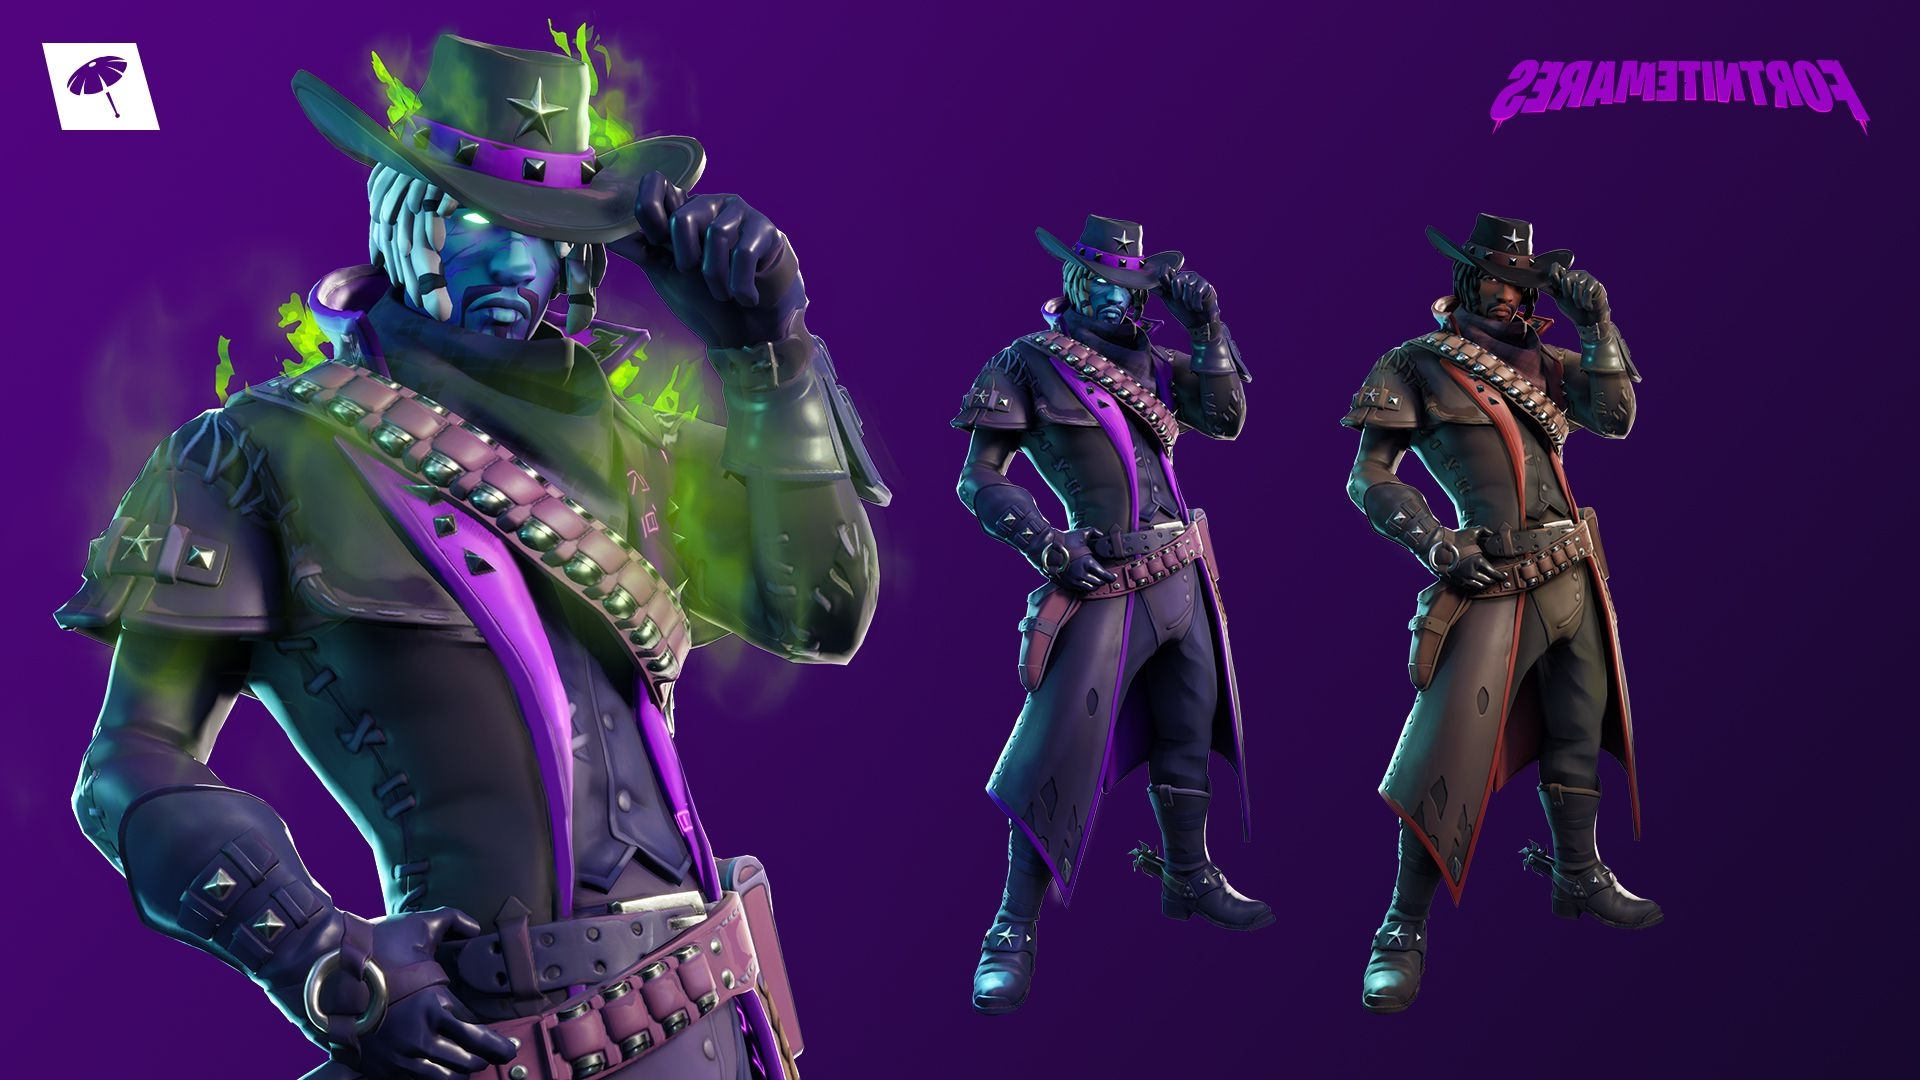 Here's everything we know about Fortnitemares, the 2018 Fortnite Halloween event